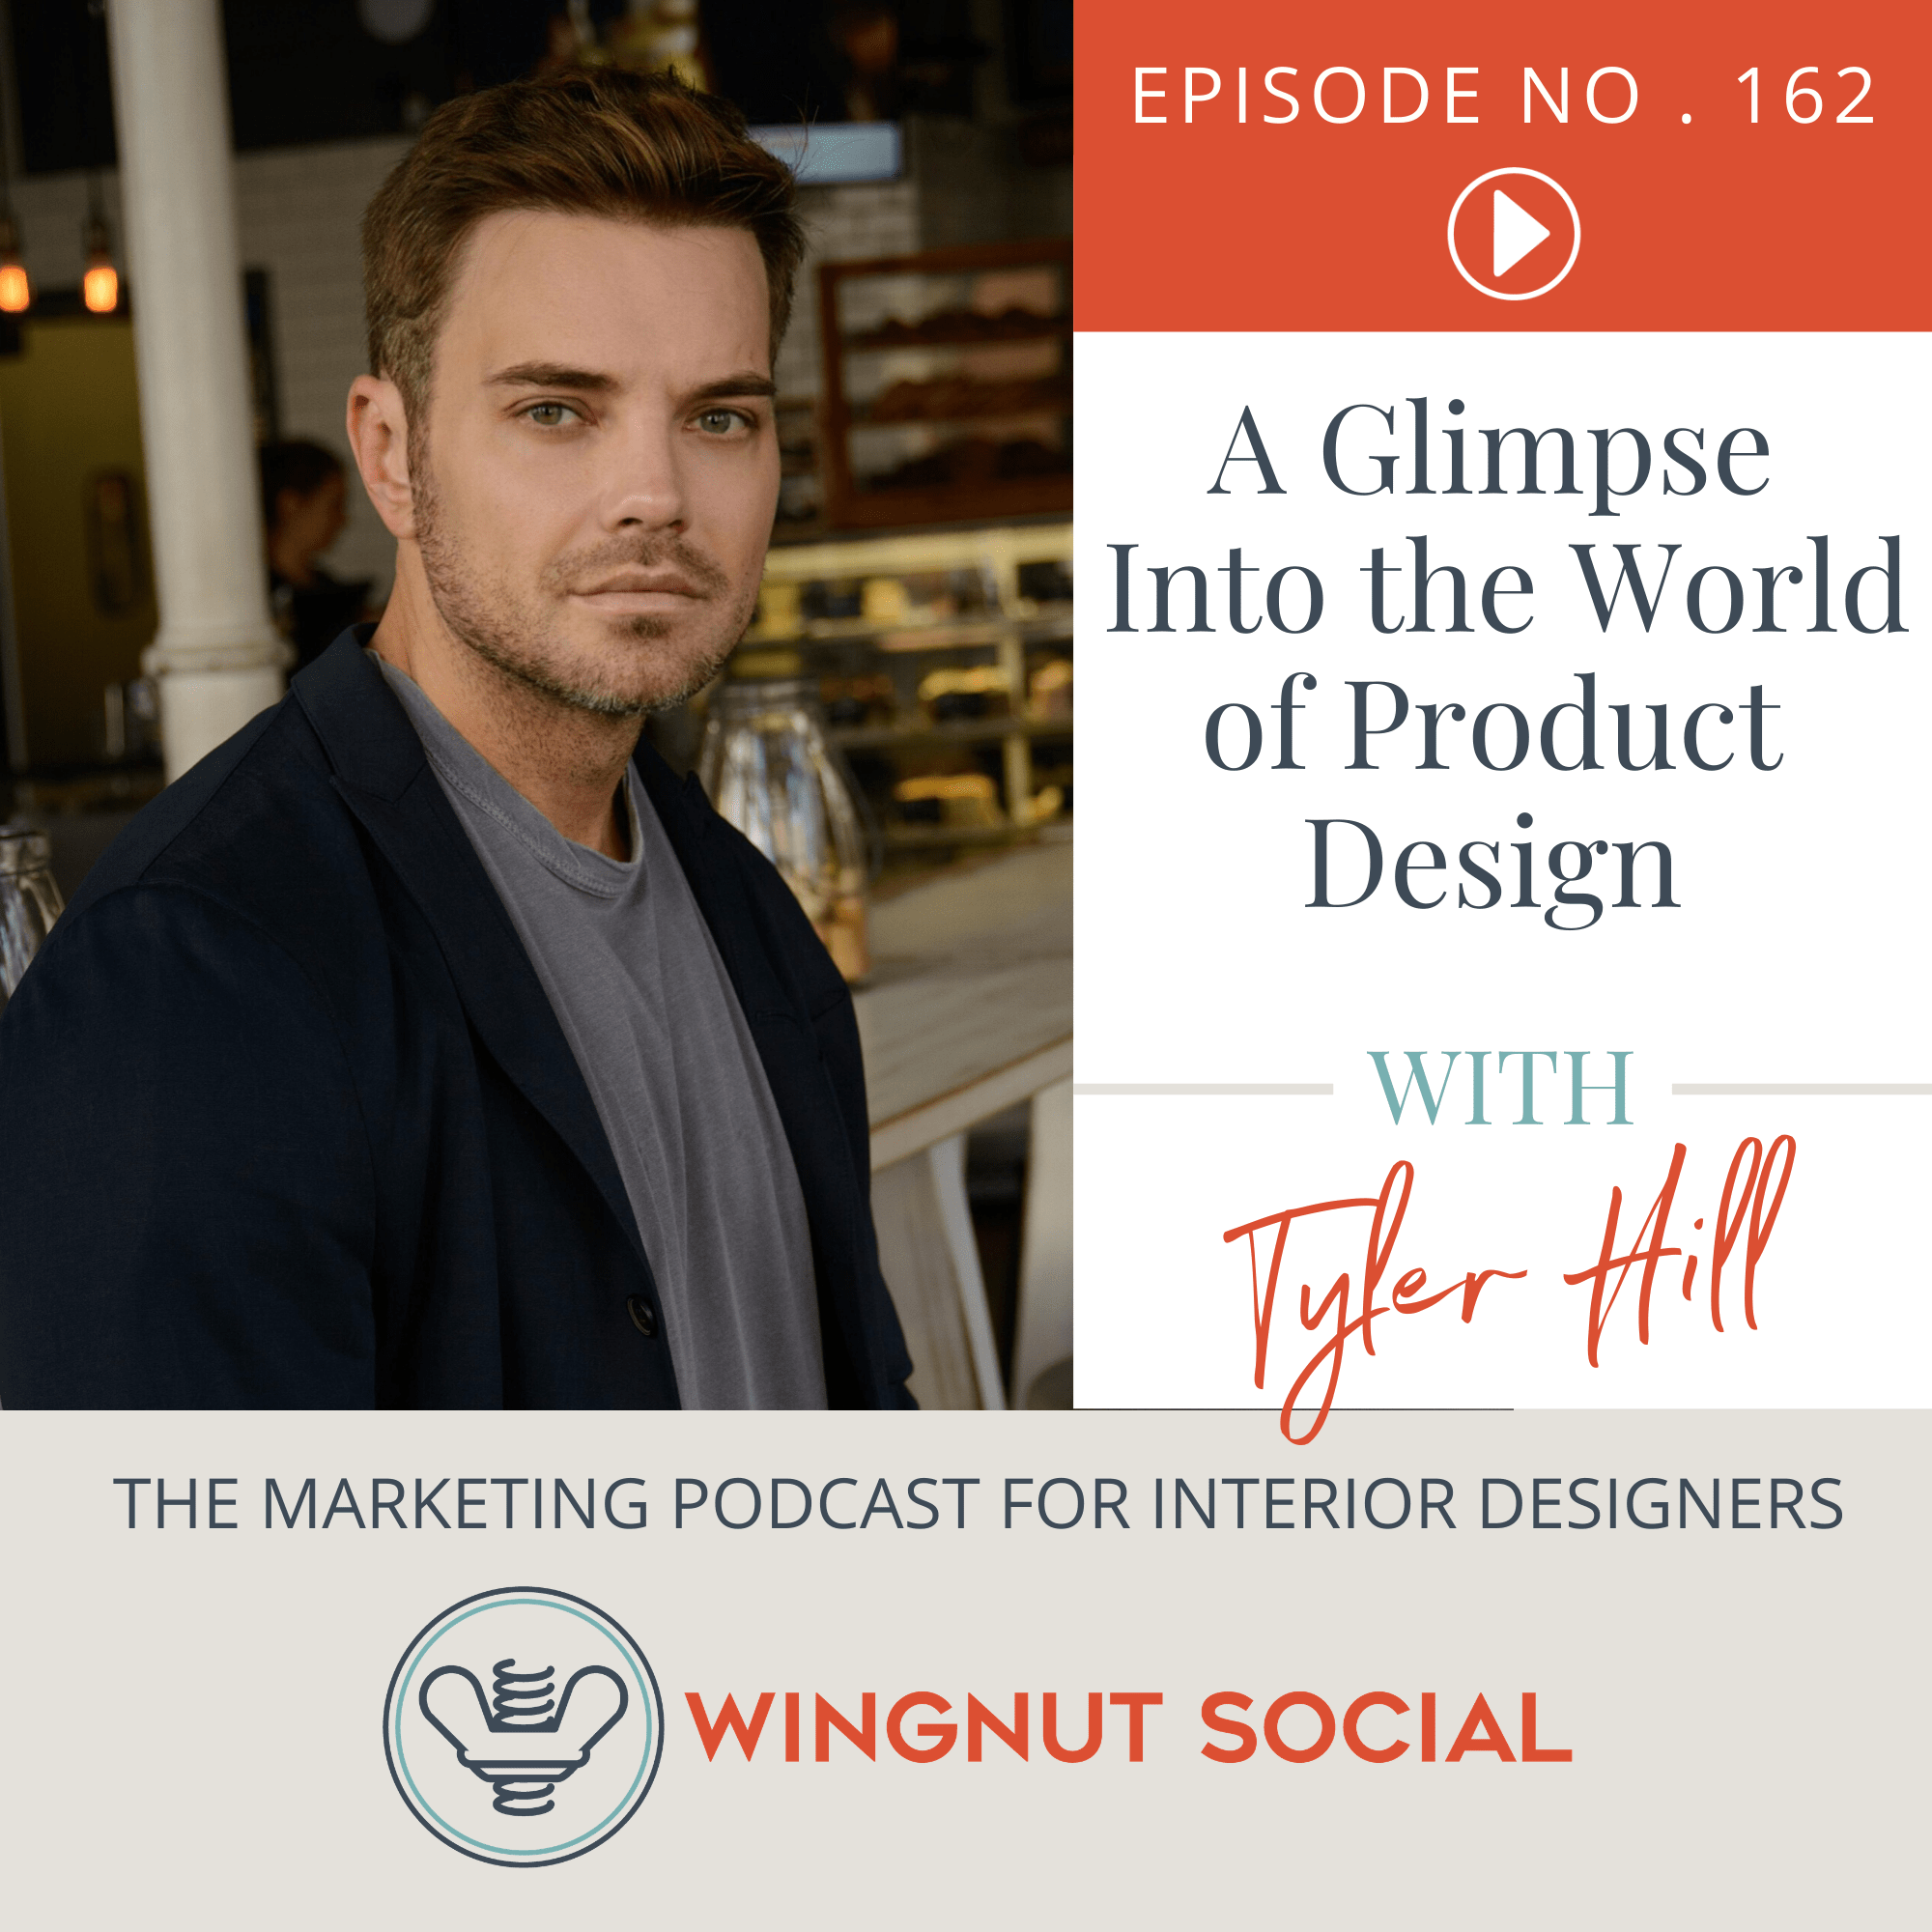 A Glimpse Into the World of Product Design with Tyler Hill